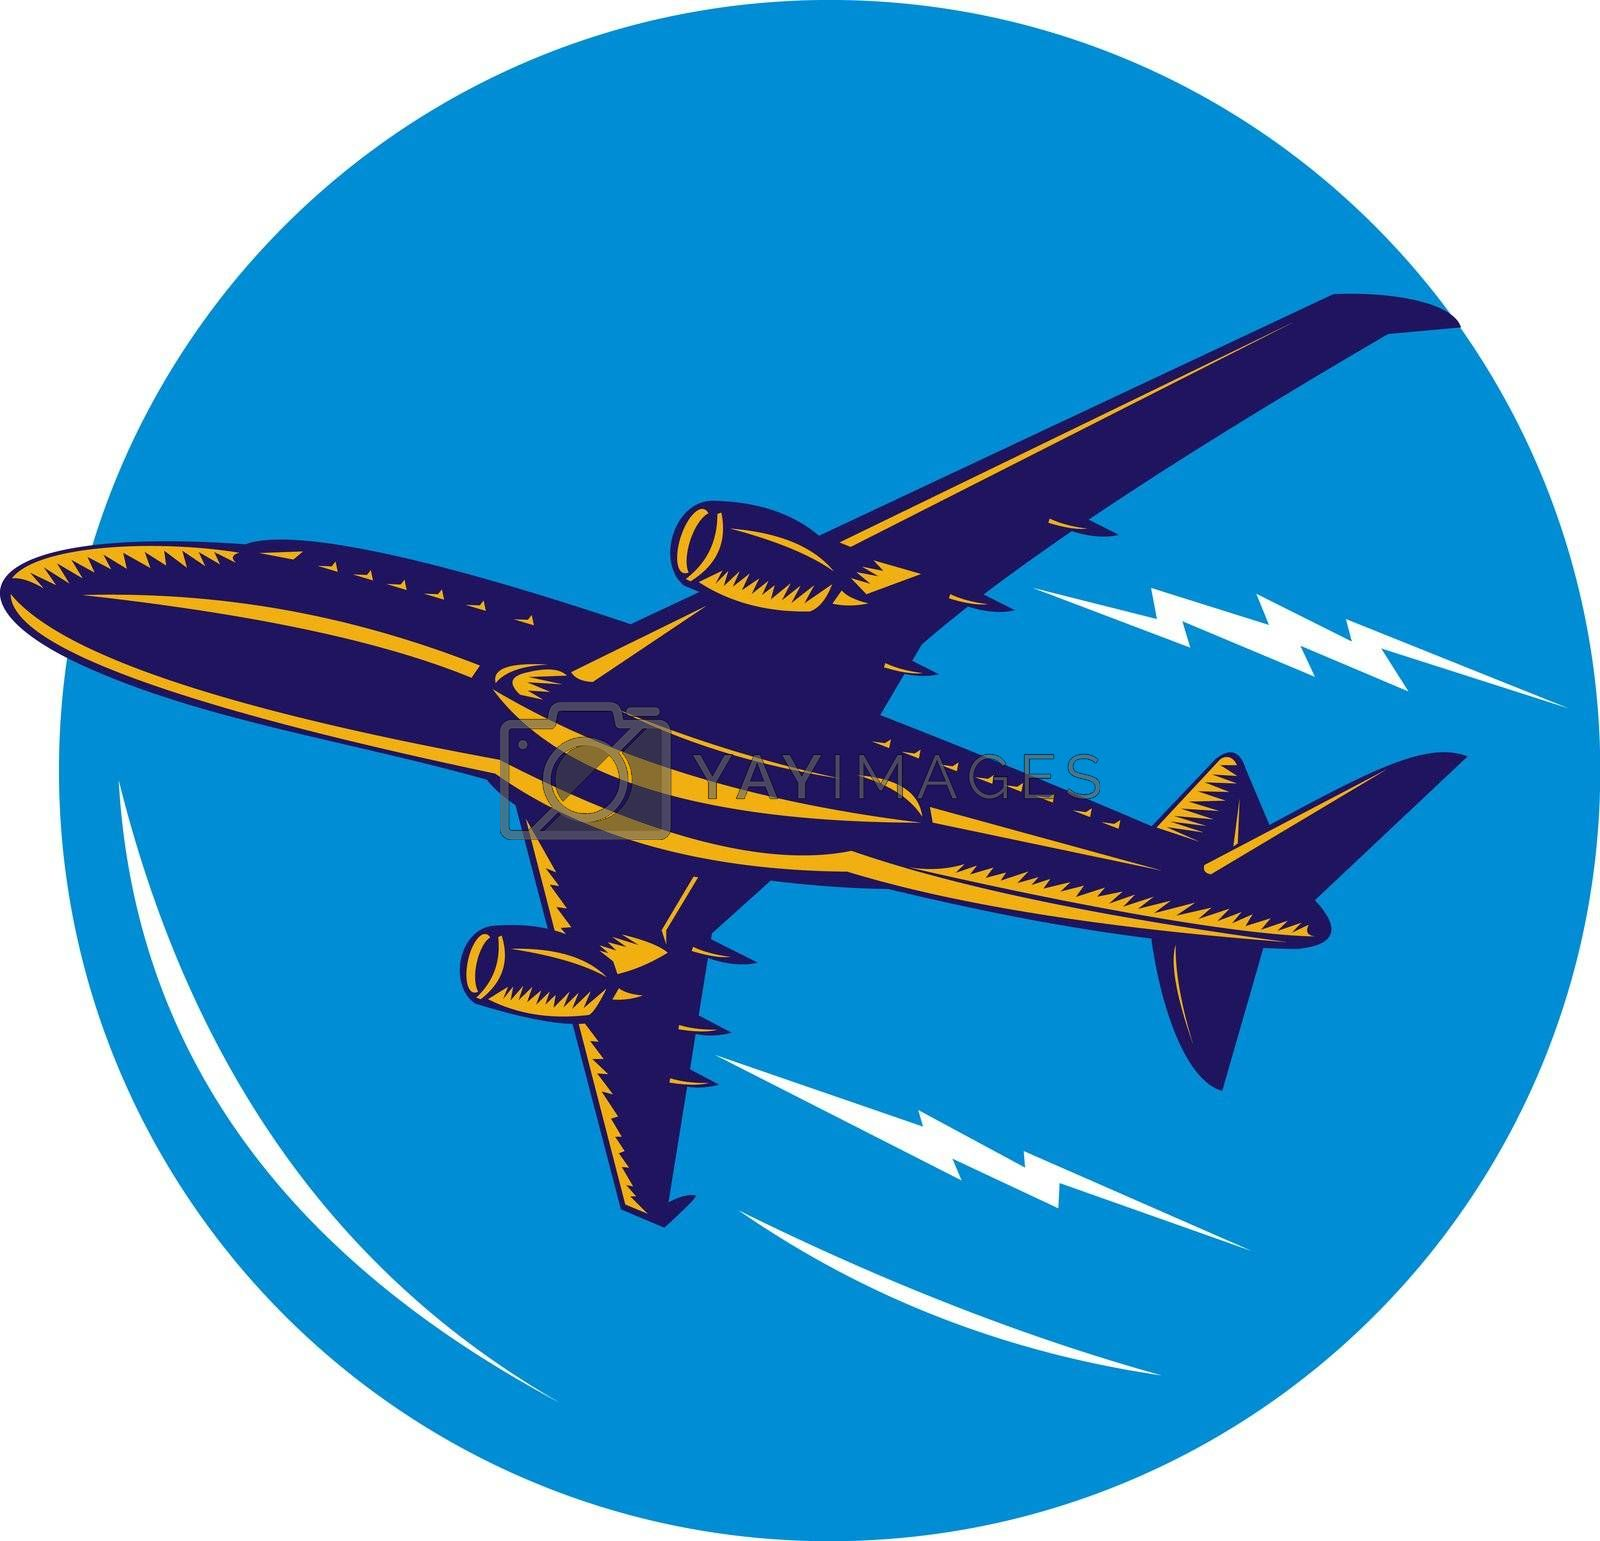 illustration of a commercial jet plane airliner on isolated background